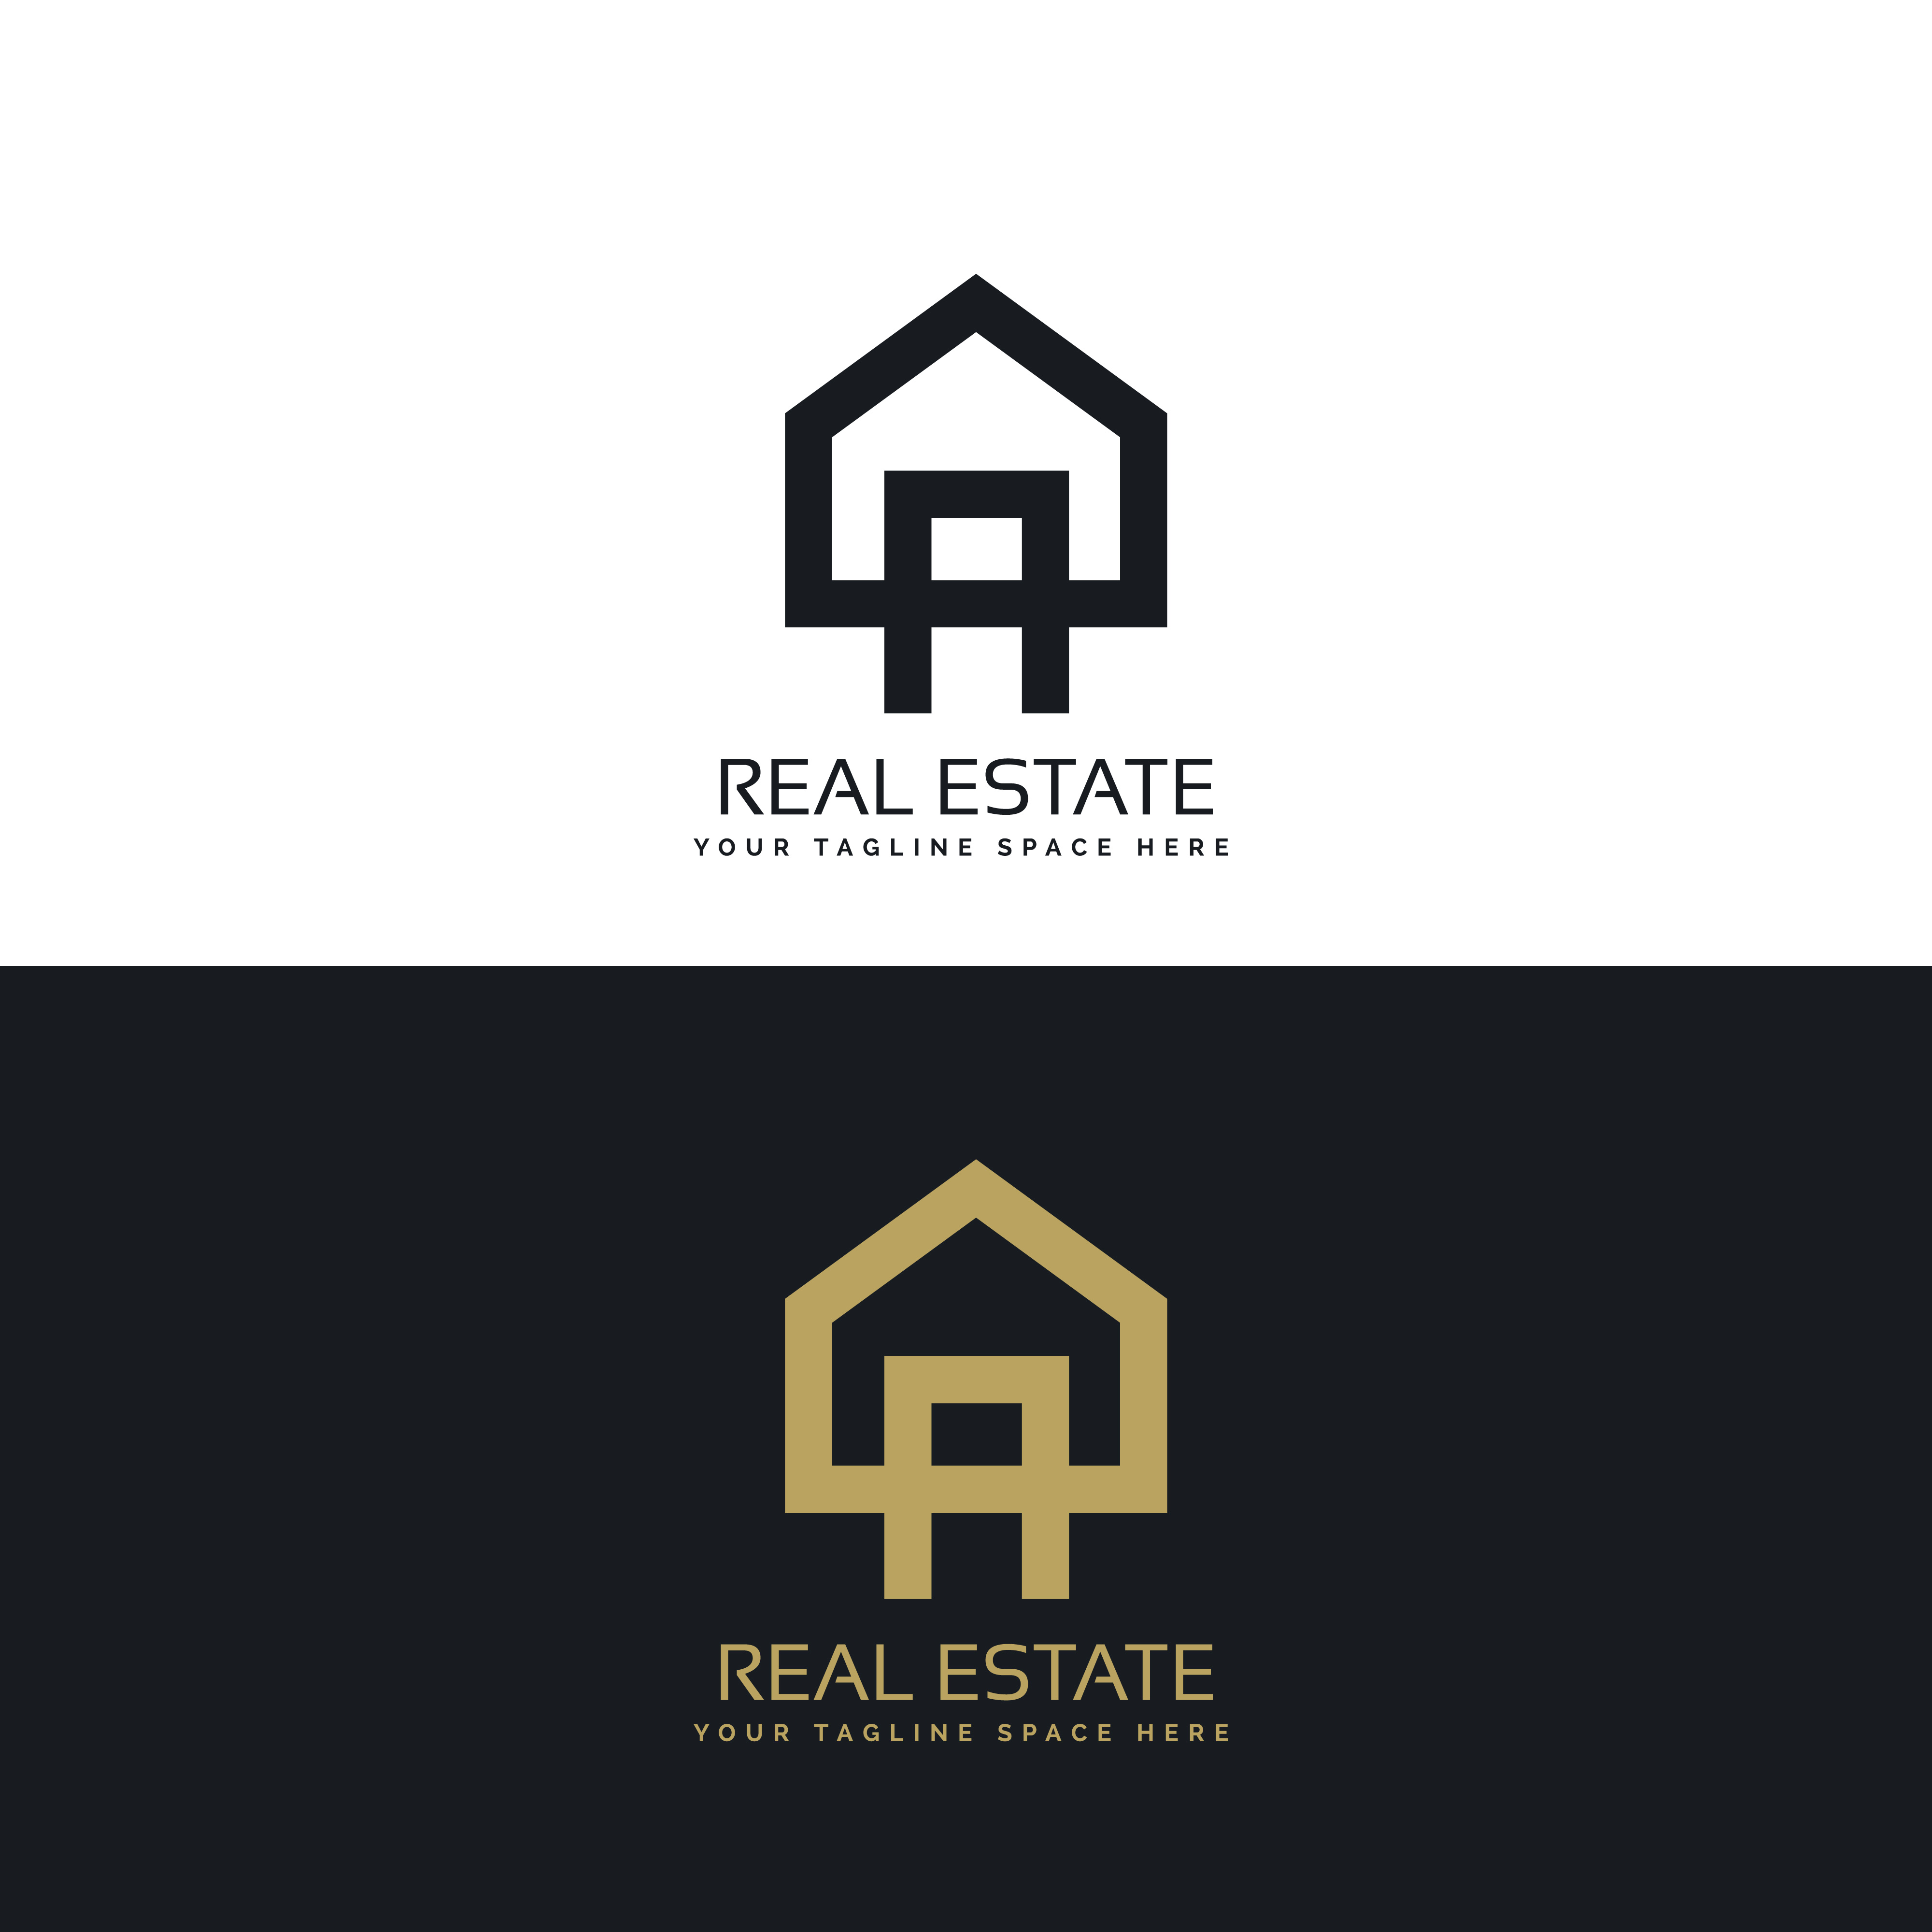 House logo design in clean minimal style download free for House logo design free